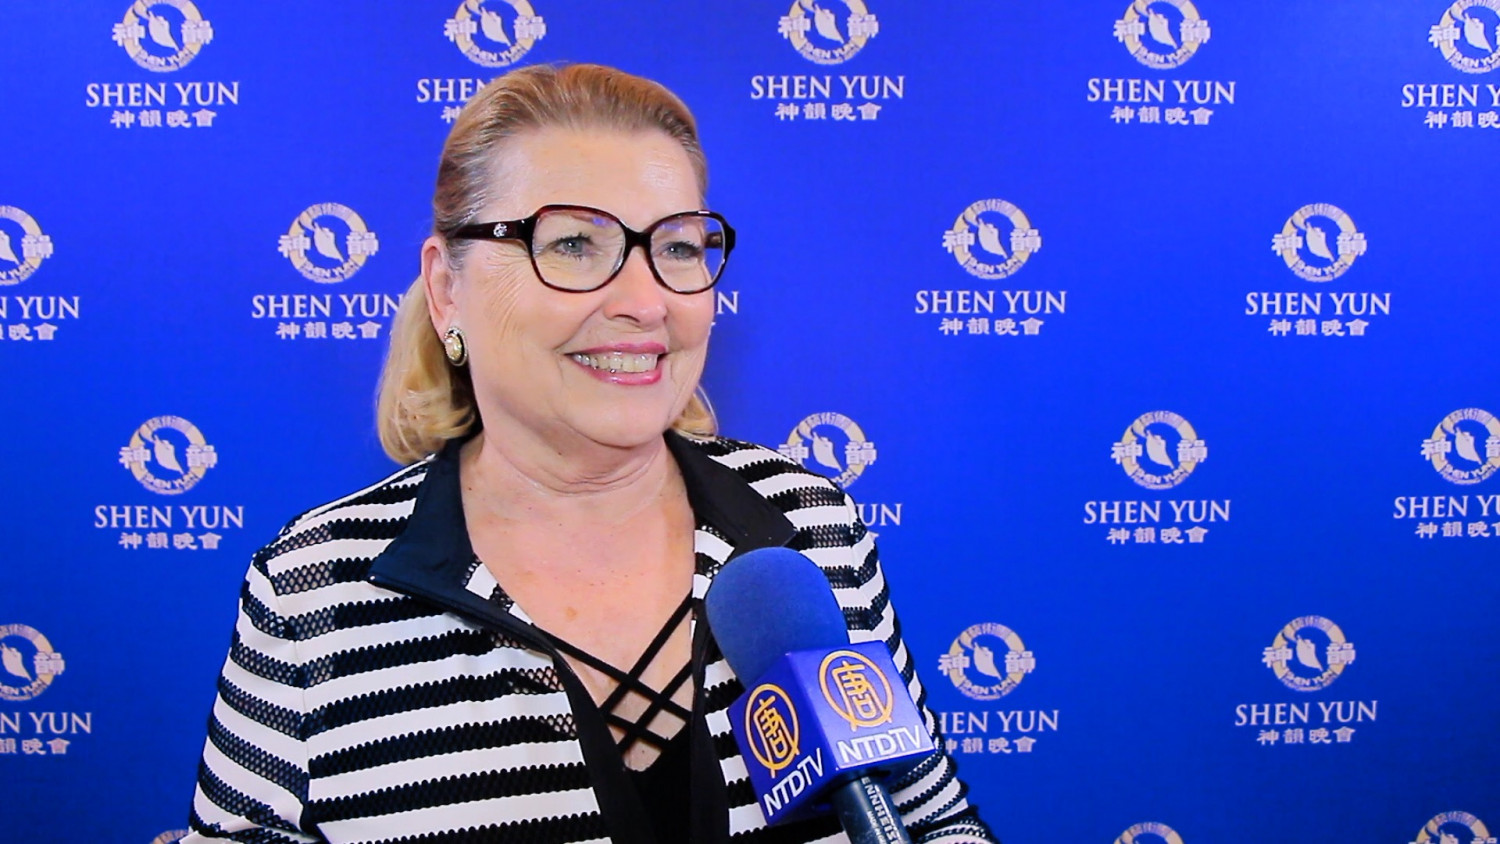 Executive Producer Sees Spark of Divine in Shen Yun